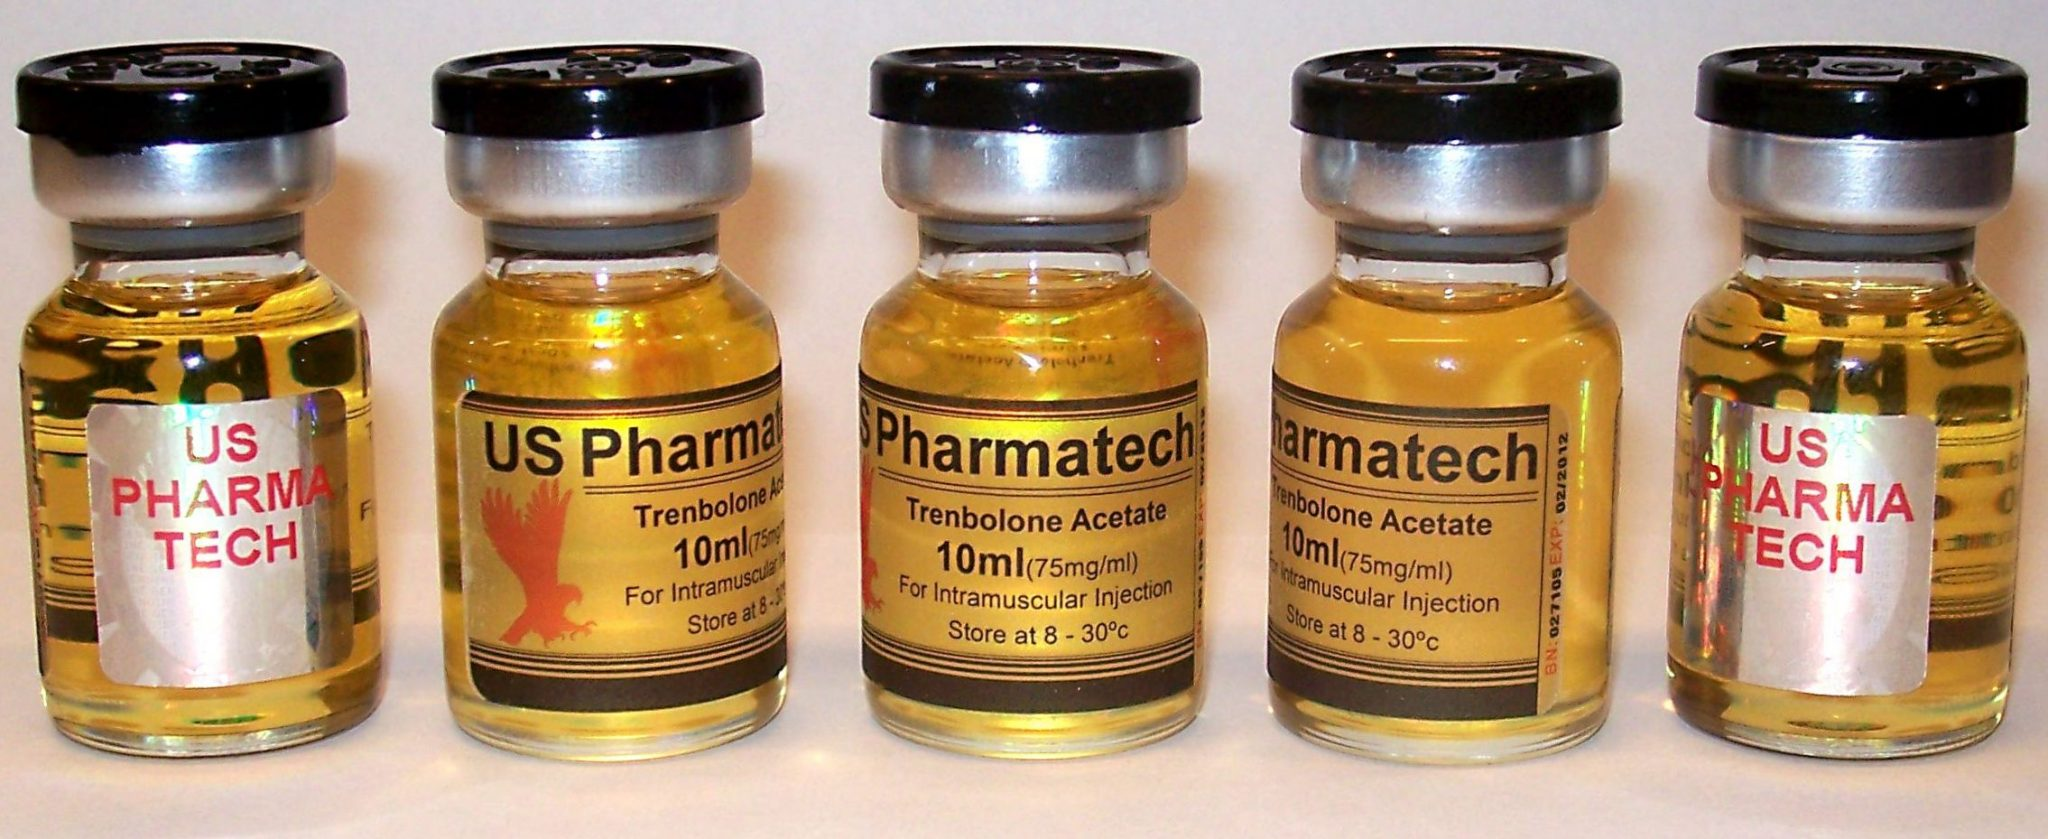 Trenbolone Acetate Versus Trenbolone Enanthate - What Steroids